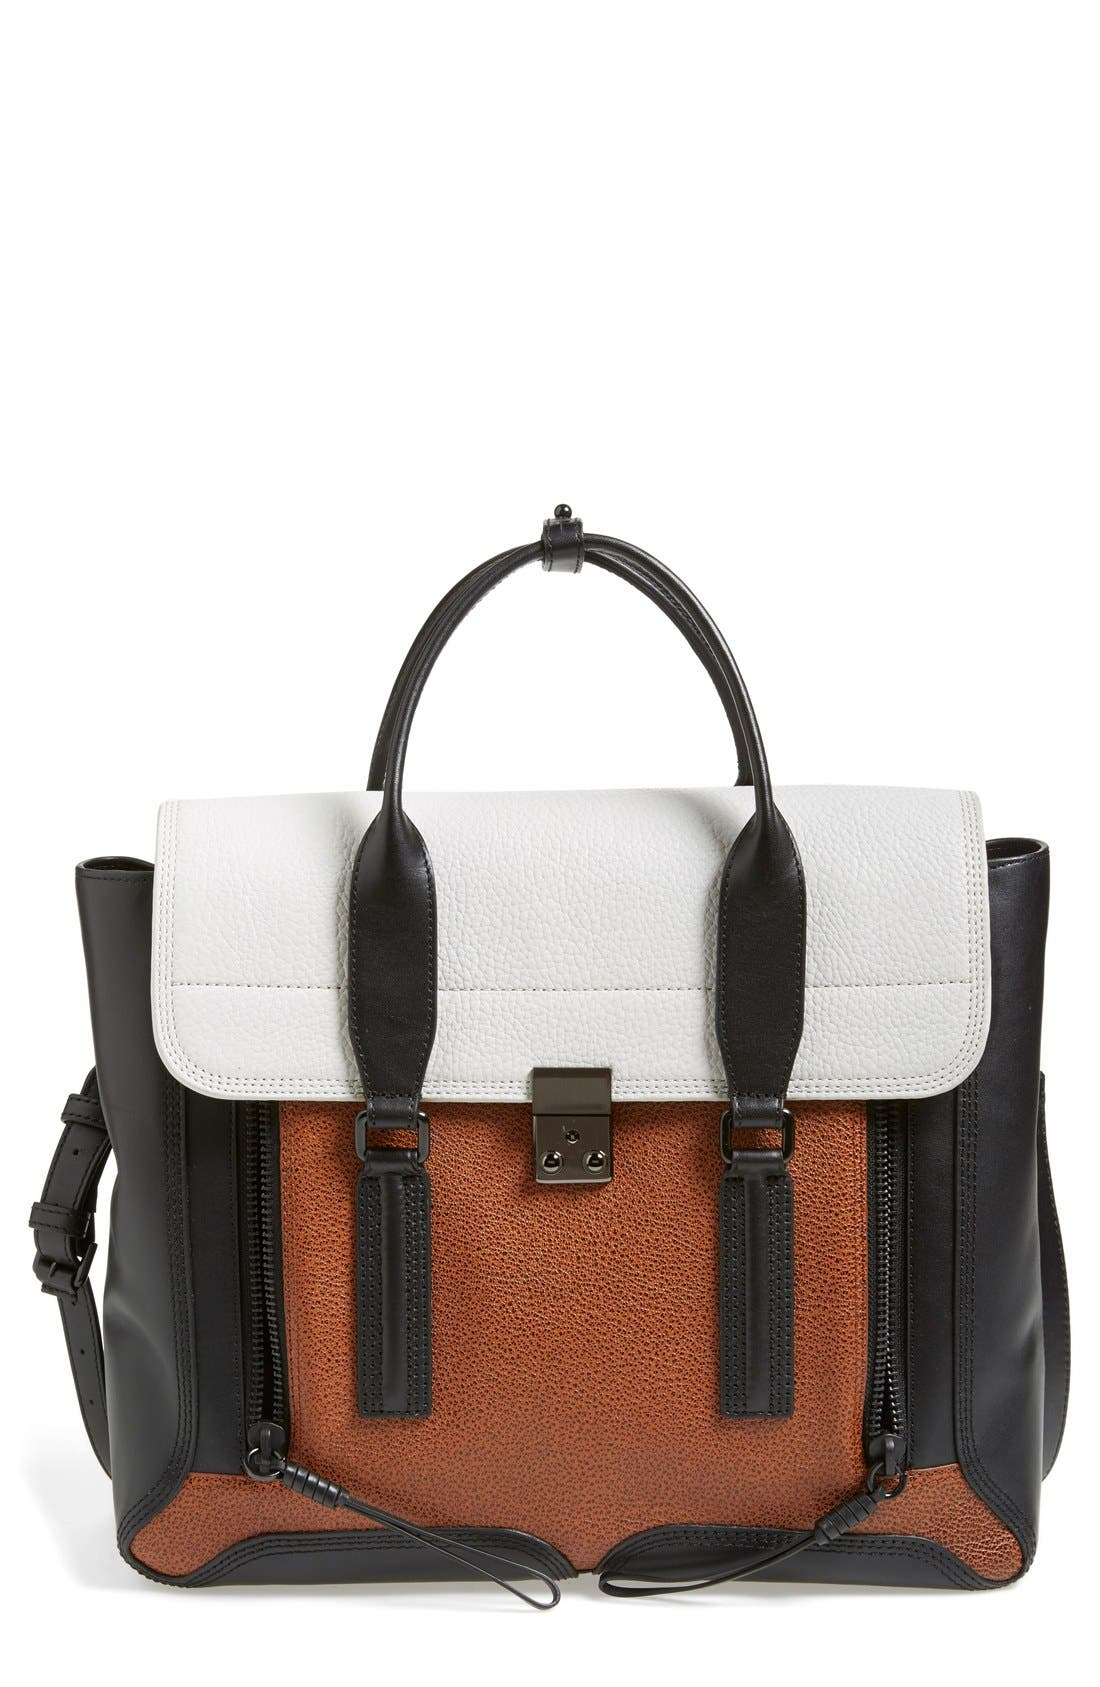 Alternate Image 1 Selected - 3.1 Phillip Lim 'Large Pashli' Leather Satchel